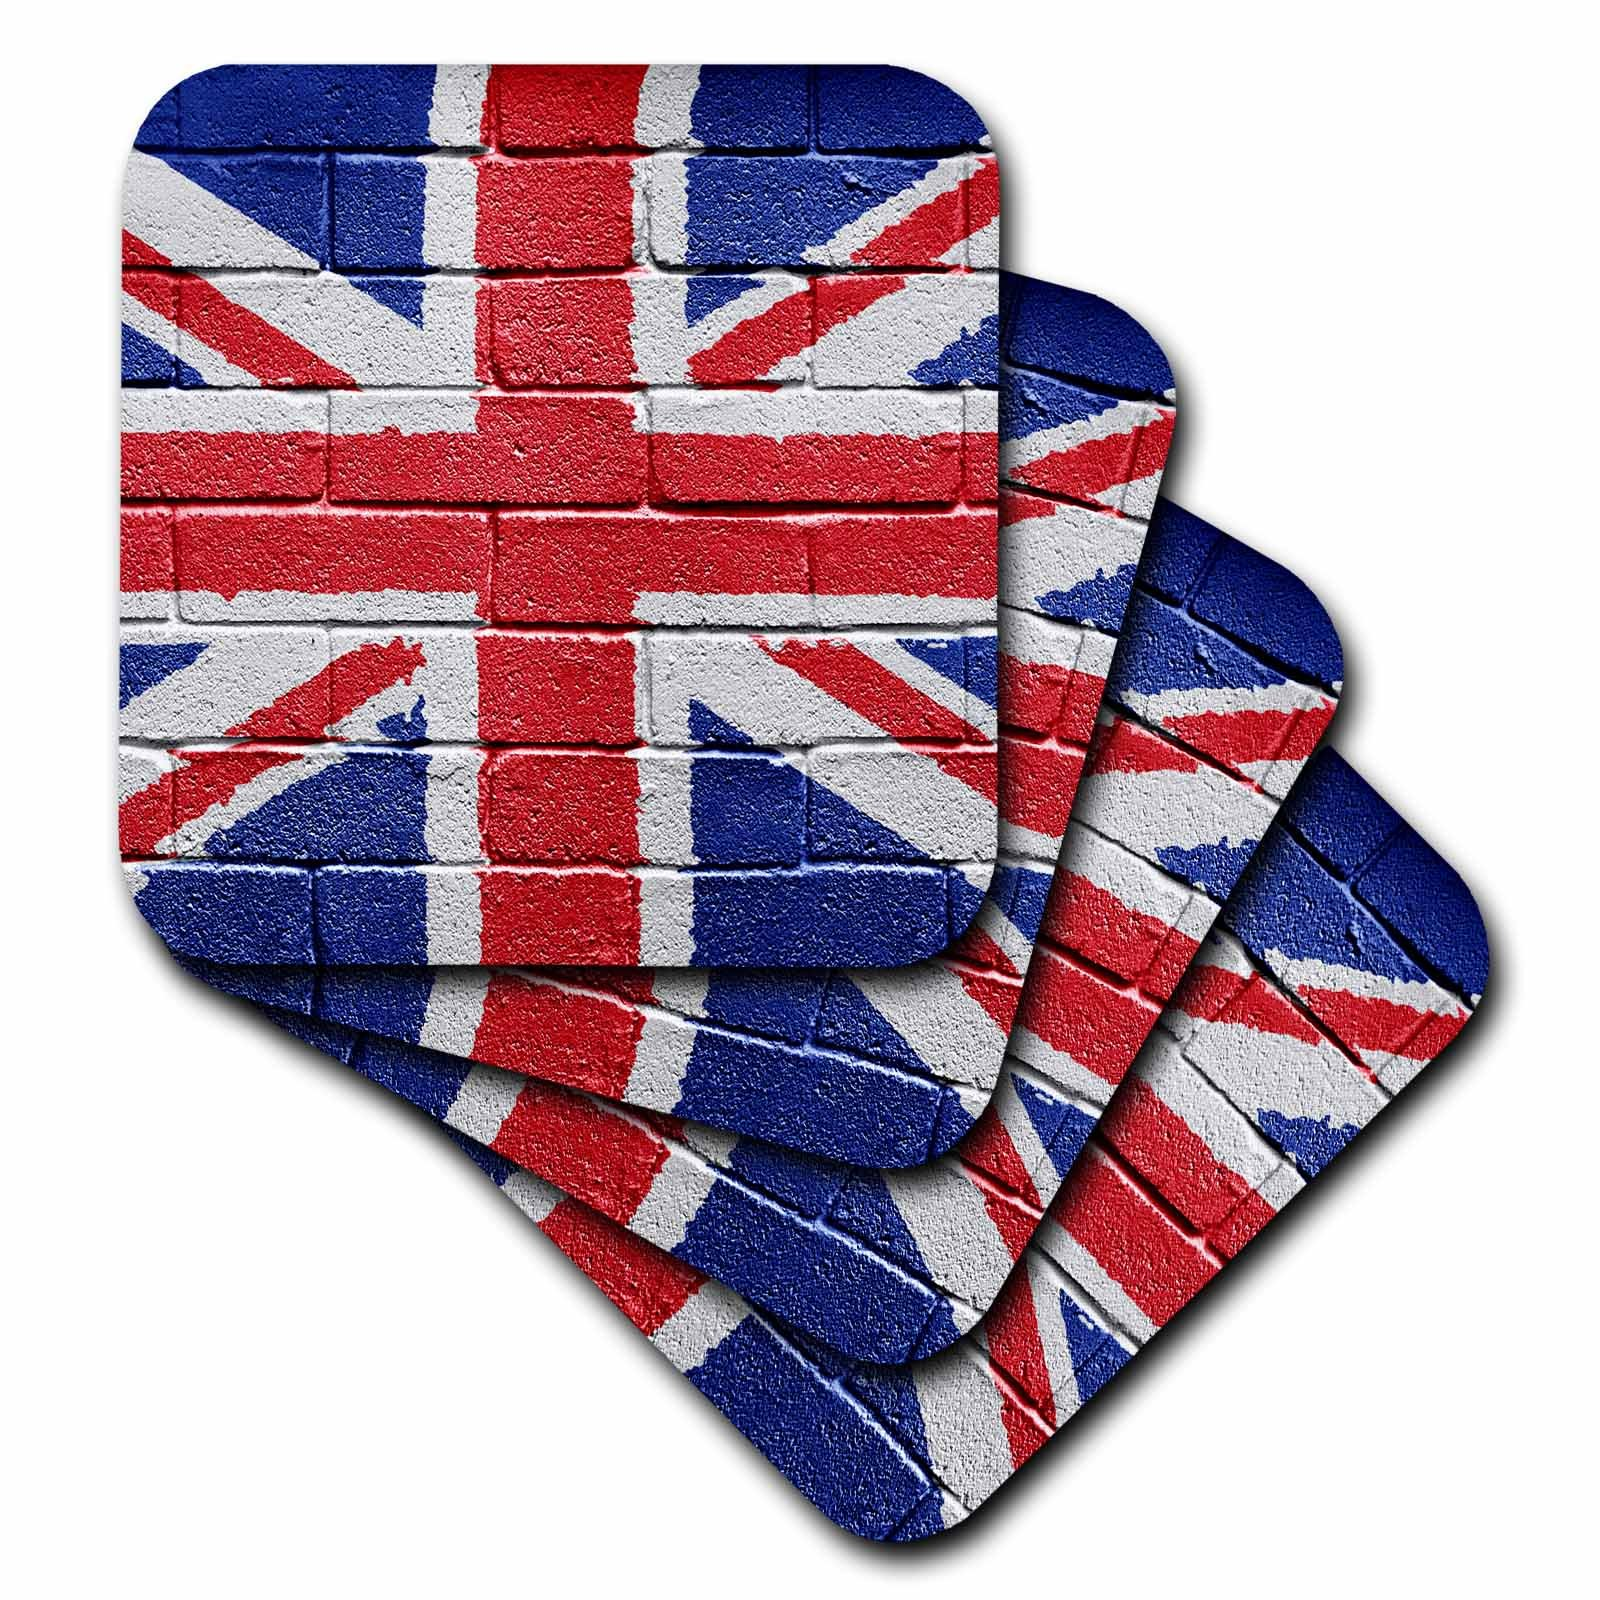 3dRose cst_155120_4 UK United Kingdom Great Britain British Flag on Brick Wall National Country Ceramic Tile Coasters, Set of 8